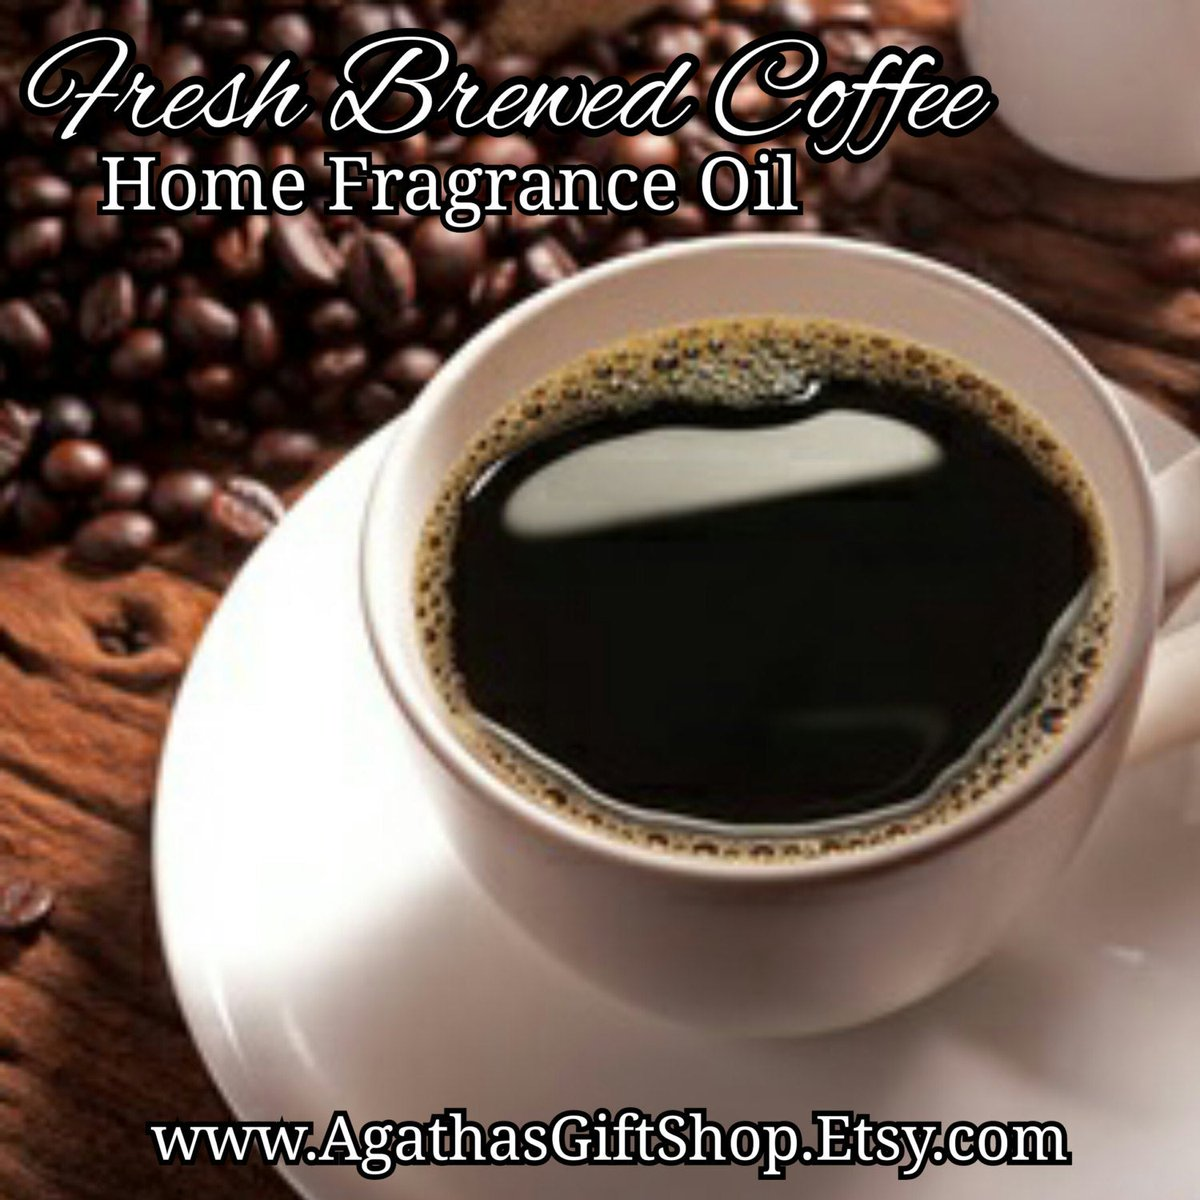 Fresh Brewed Coffee Home Fragrance Diffuser Warmer Aromatherapy Burning Oil  #GiftShopSale #BlackFriday #Wedding #HerbalRemedies #Incense #CyberMonday #AromatherapyOil #HomeFragranceOil #PerfumeBodyOils #Etsy #HomeDecor